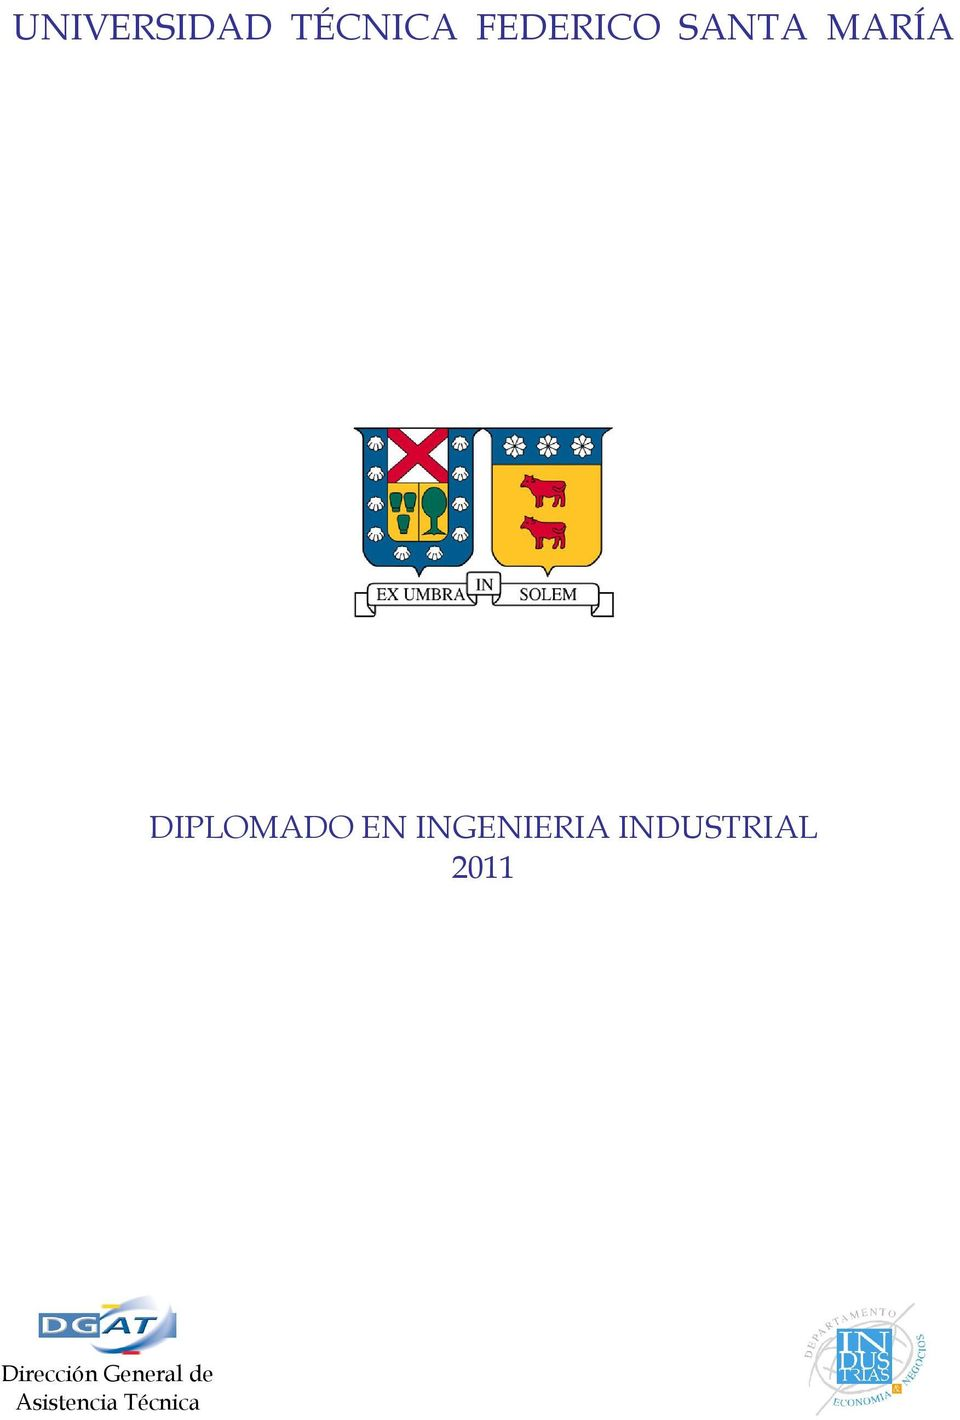 INGENIERIA INDUSTRIAL 2011